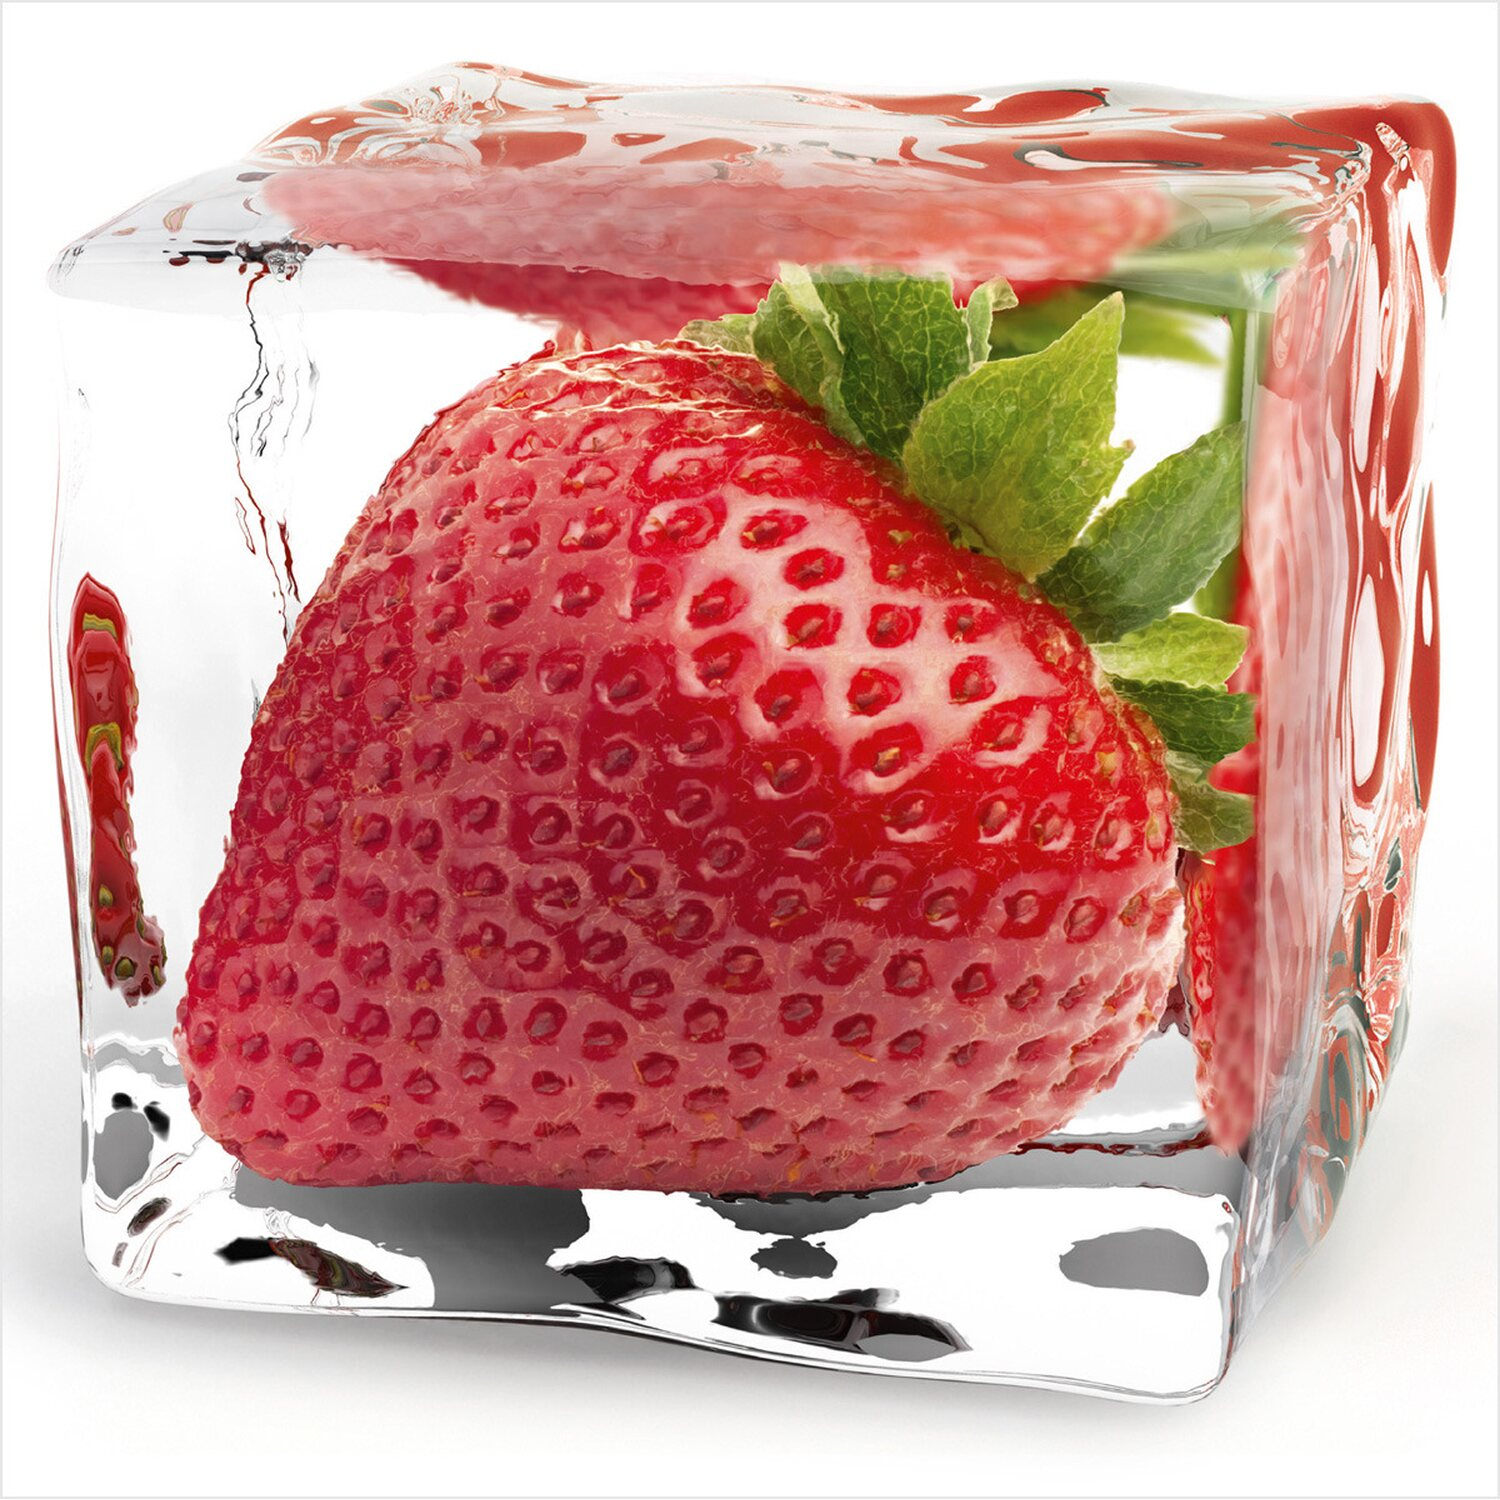 eurographics deco glass iced strawberry 20 cm x 20 cm. Black Bedroom Furniture Sets. Home Design Ideas